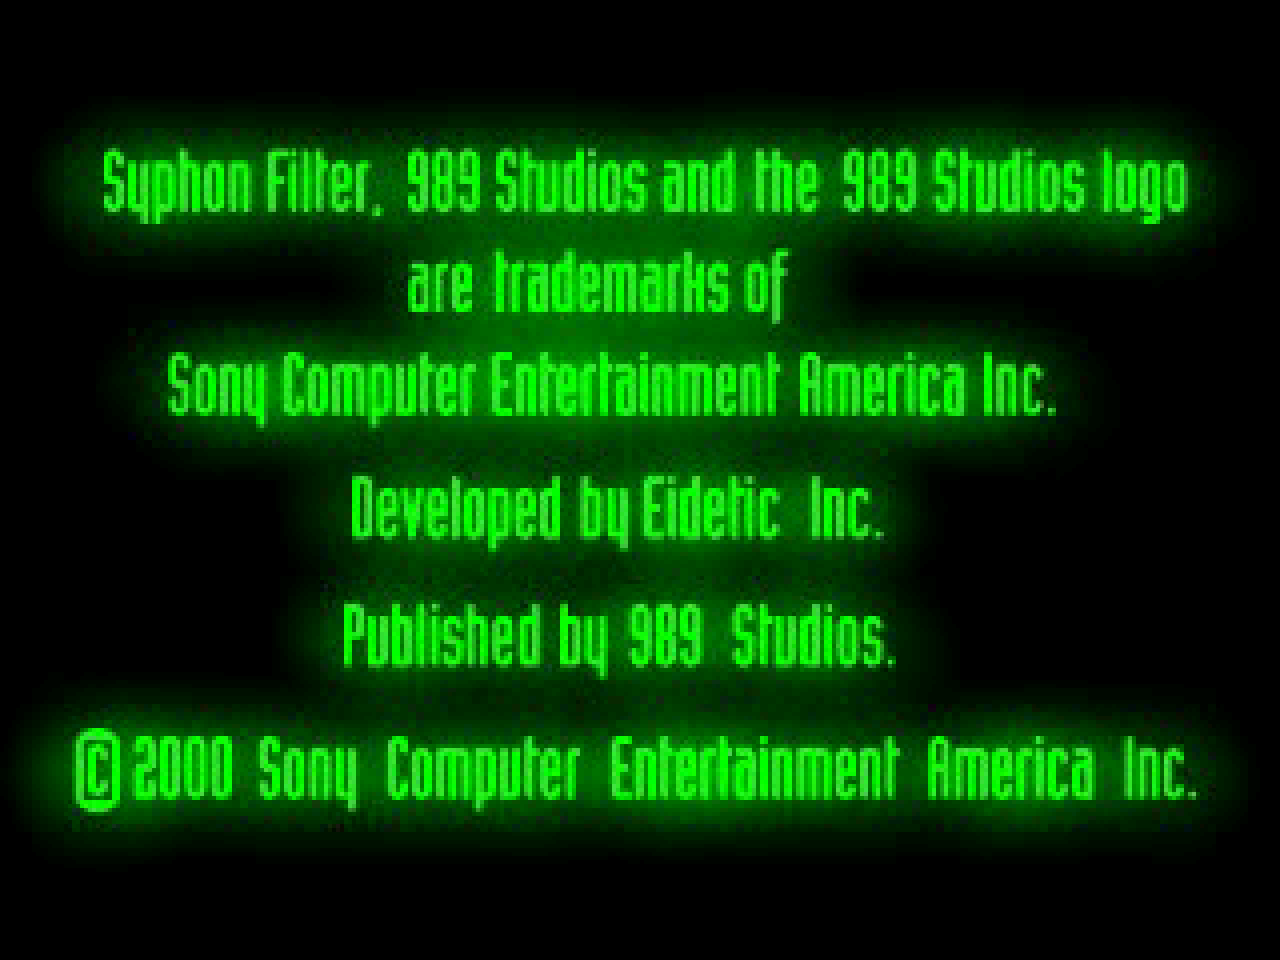 https://s3.eu-west-3.amazonaws.com/games.anthony-dessalles.com/Syphon Filter 2 PS1 2020 - Screenshots/Syphon Filter 2 Disc 1-201126-173451.png